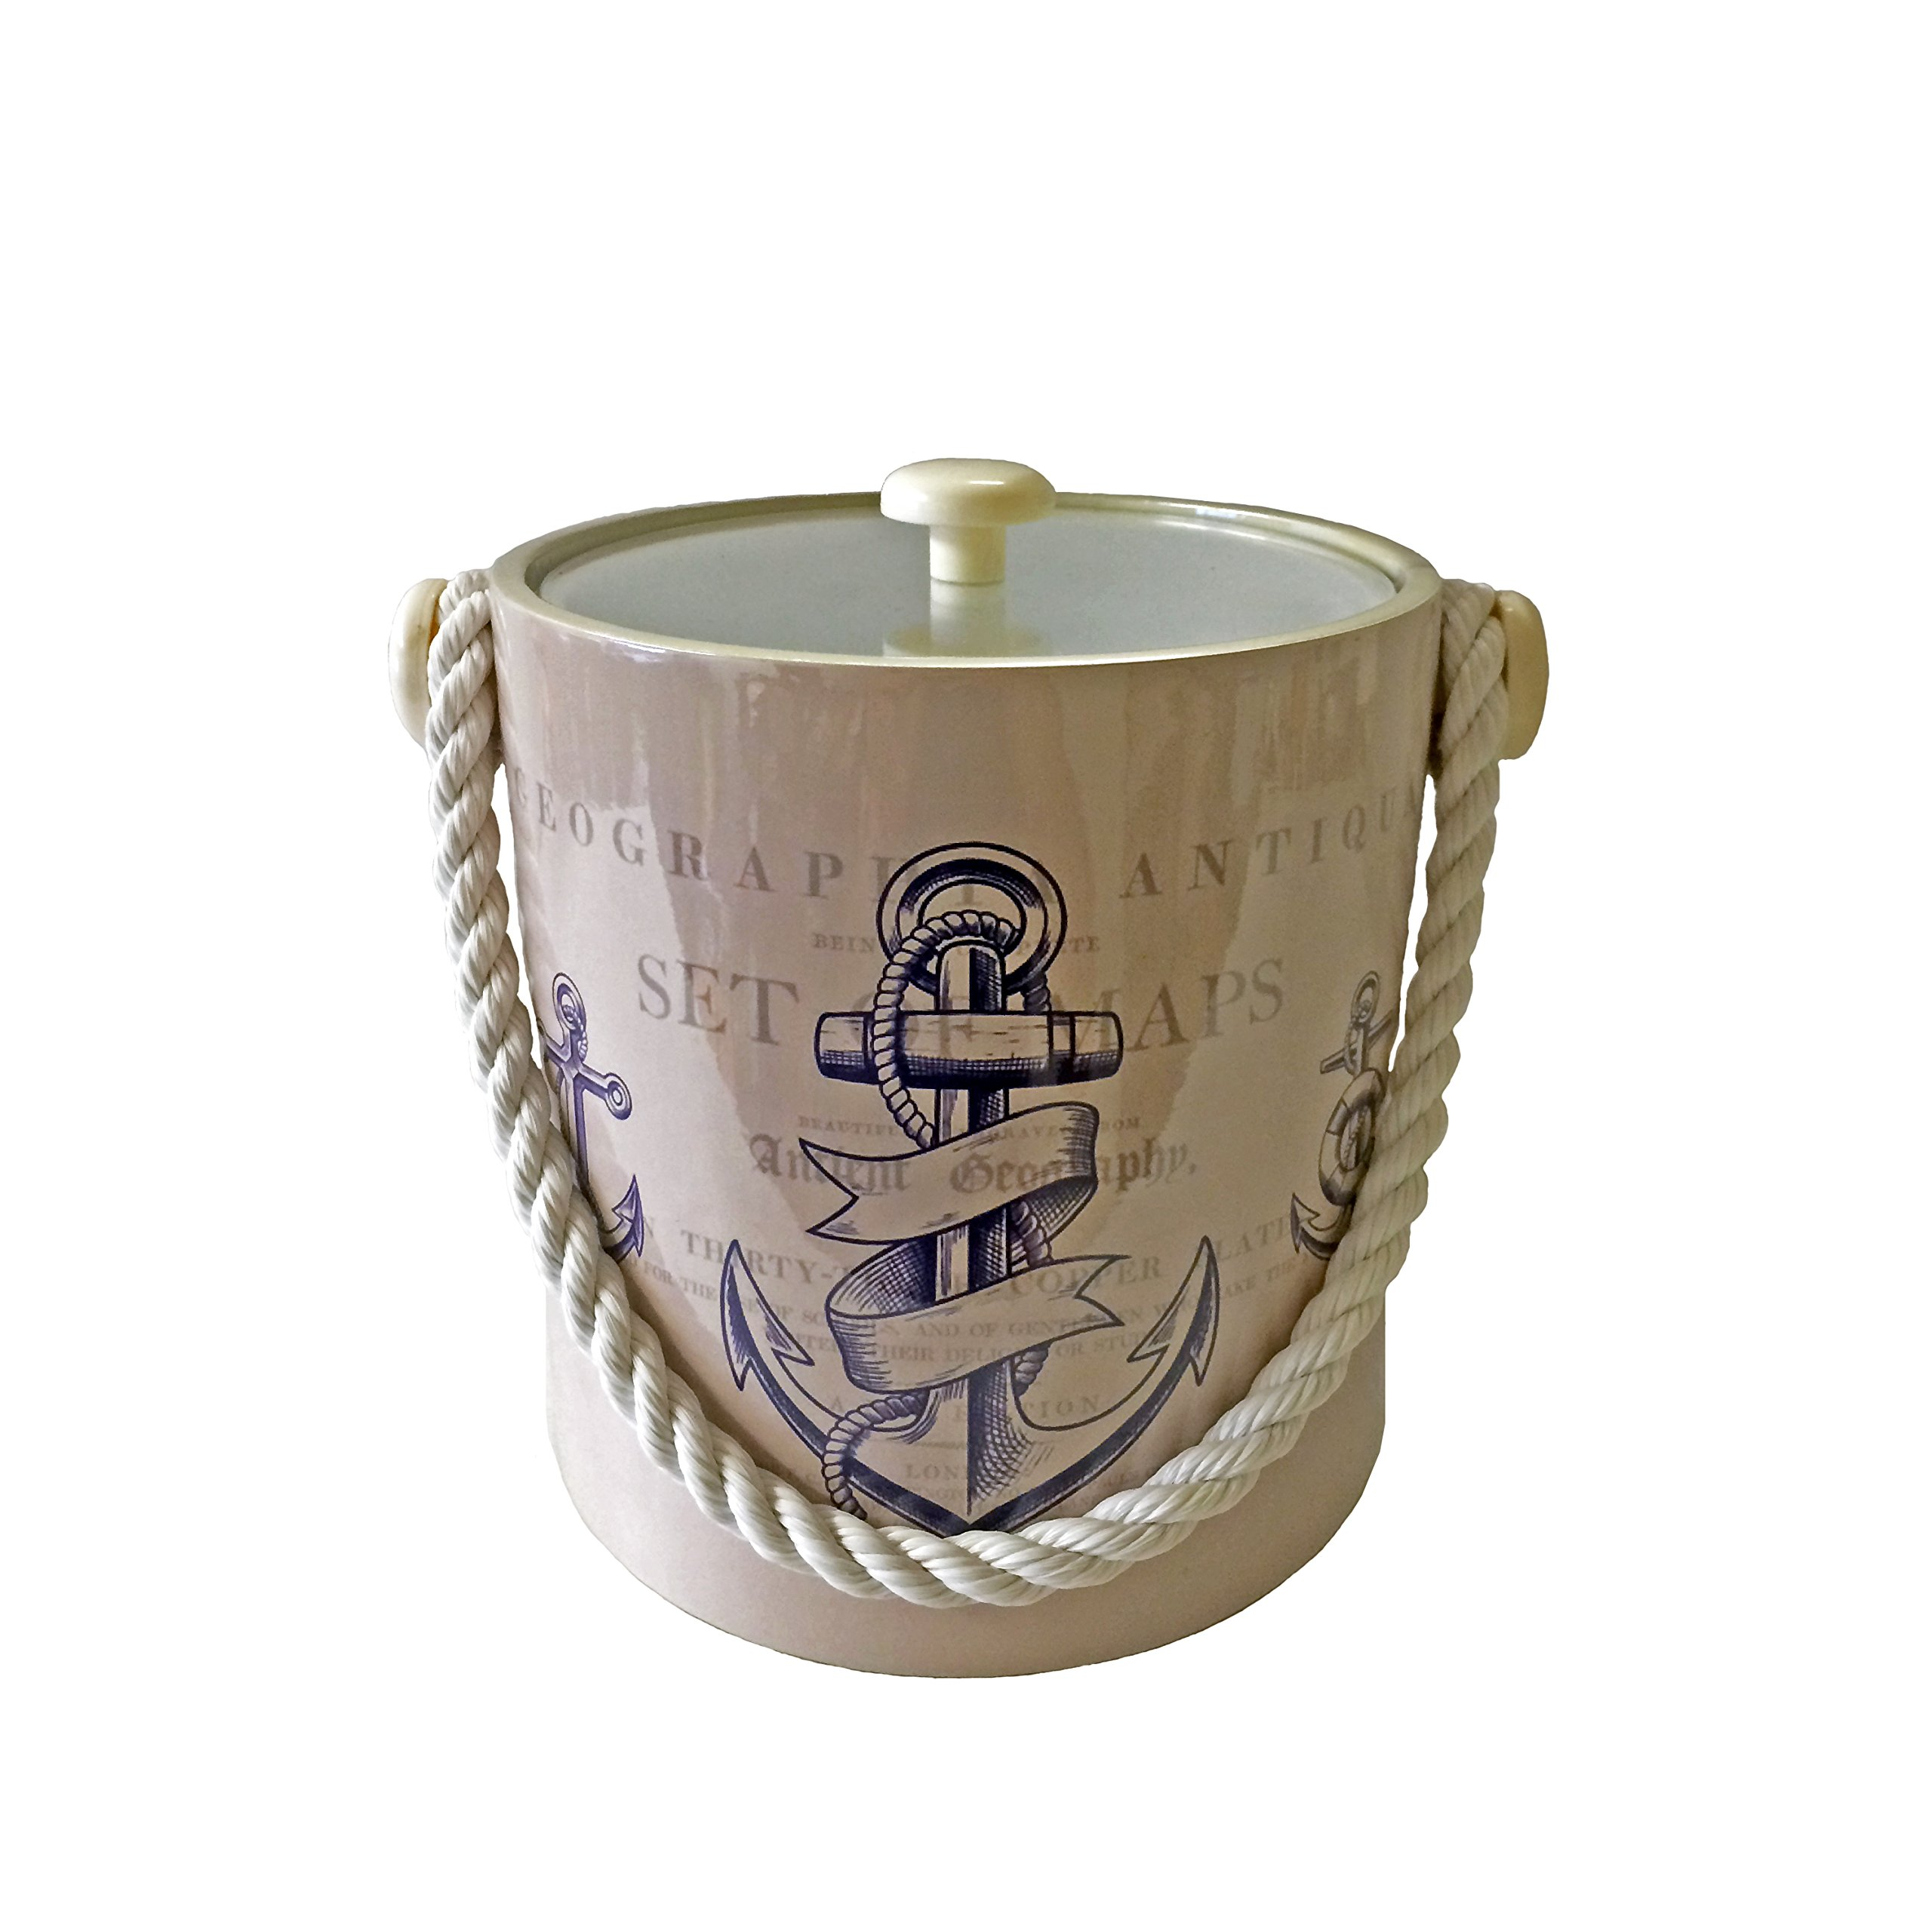 Mr. Ice Bucket - Nautical Themed 3 Qt. Beige w/ Blue Anchor & Rope Handle Ice Bucket - Double-Walled Insulated Bucket & Lid Keeps Ice Frozen for Hours - Top Rated Accessory for Wet Bar Events & Boats